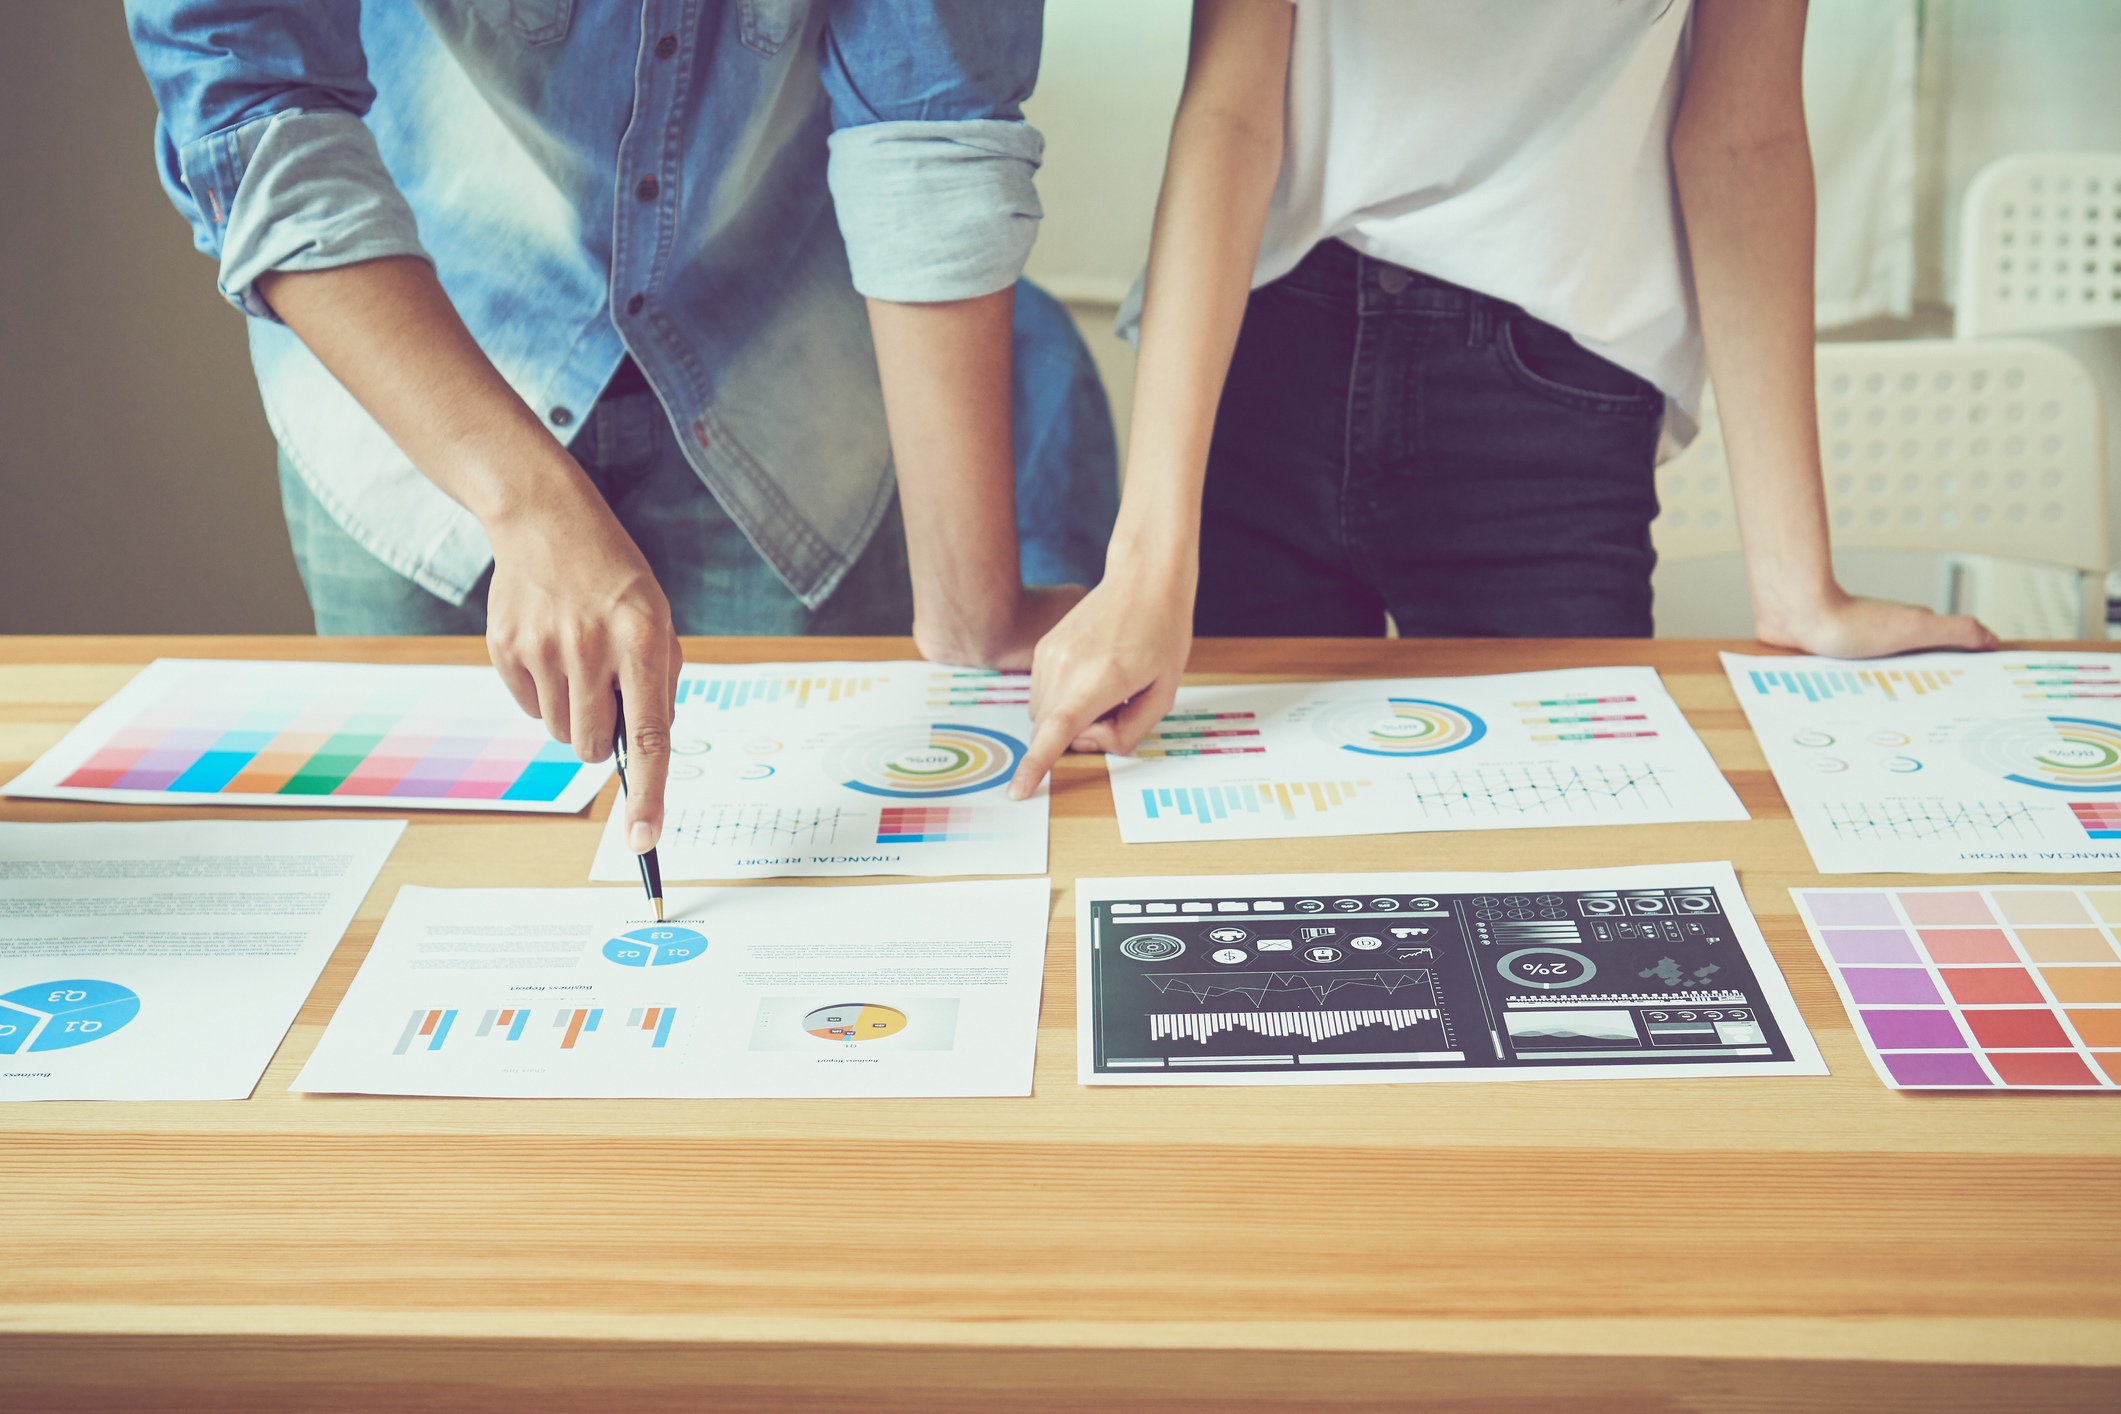 marketing-strategy-data-on-a-table